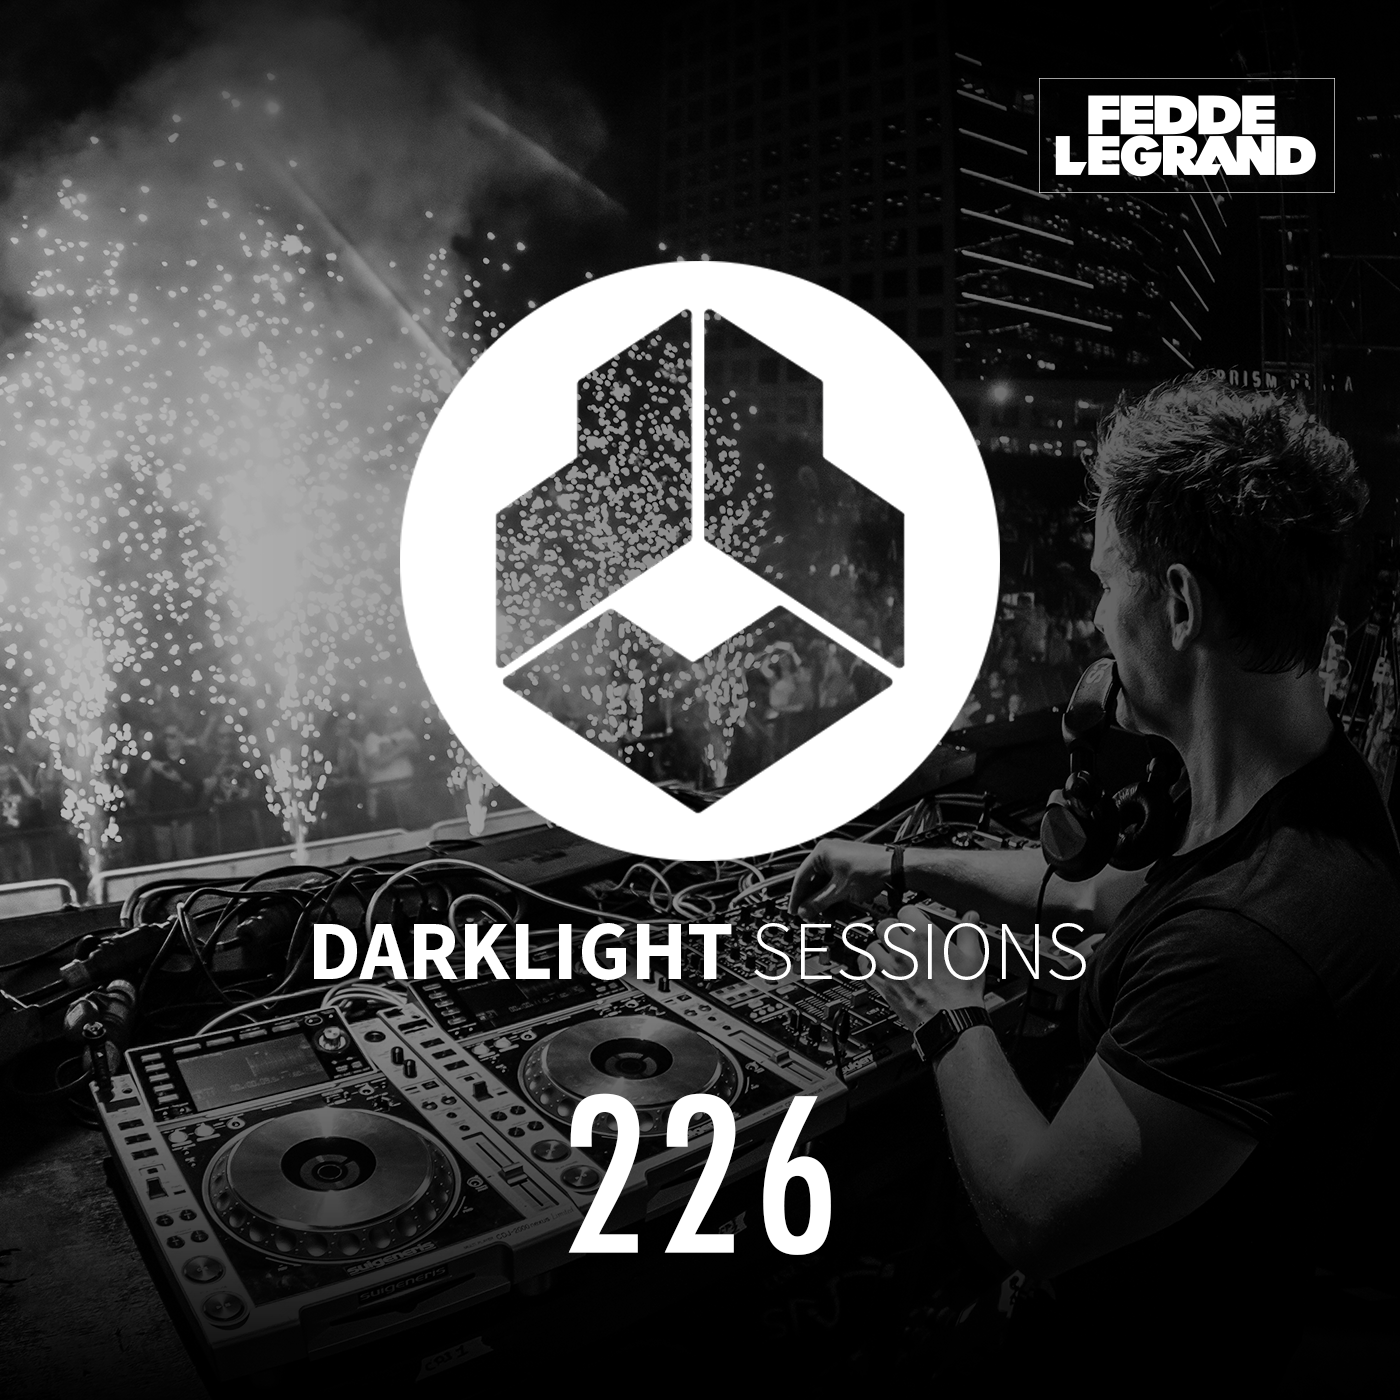 Darklight Sessions 226